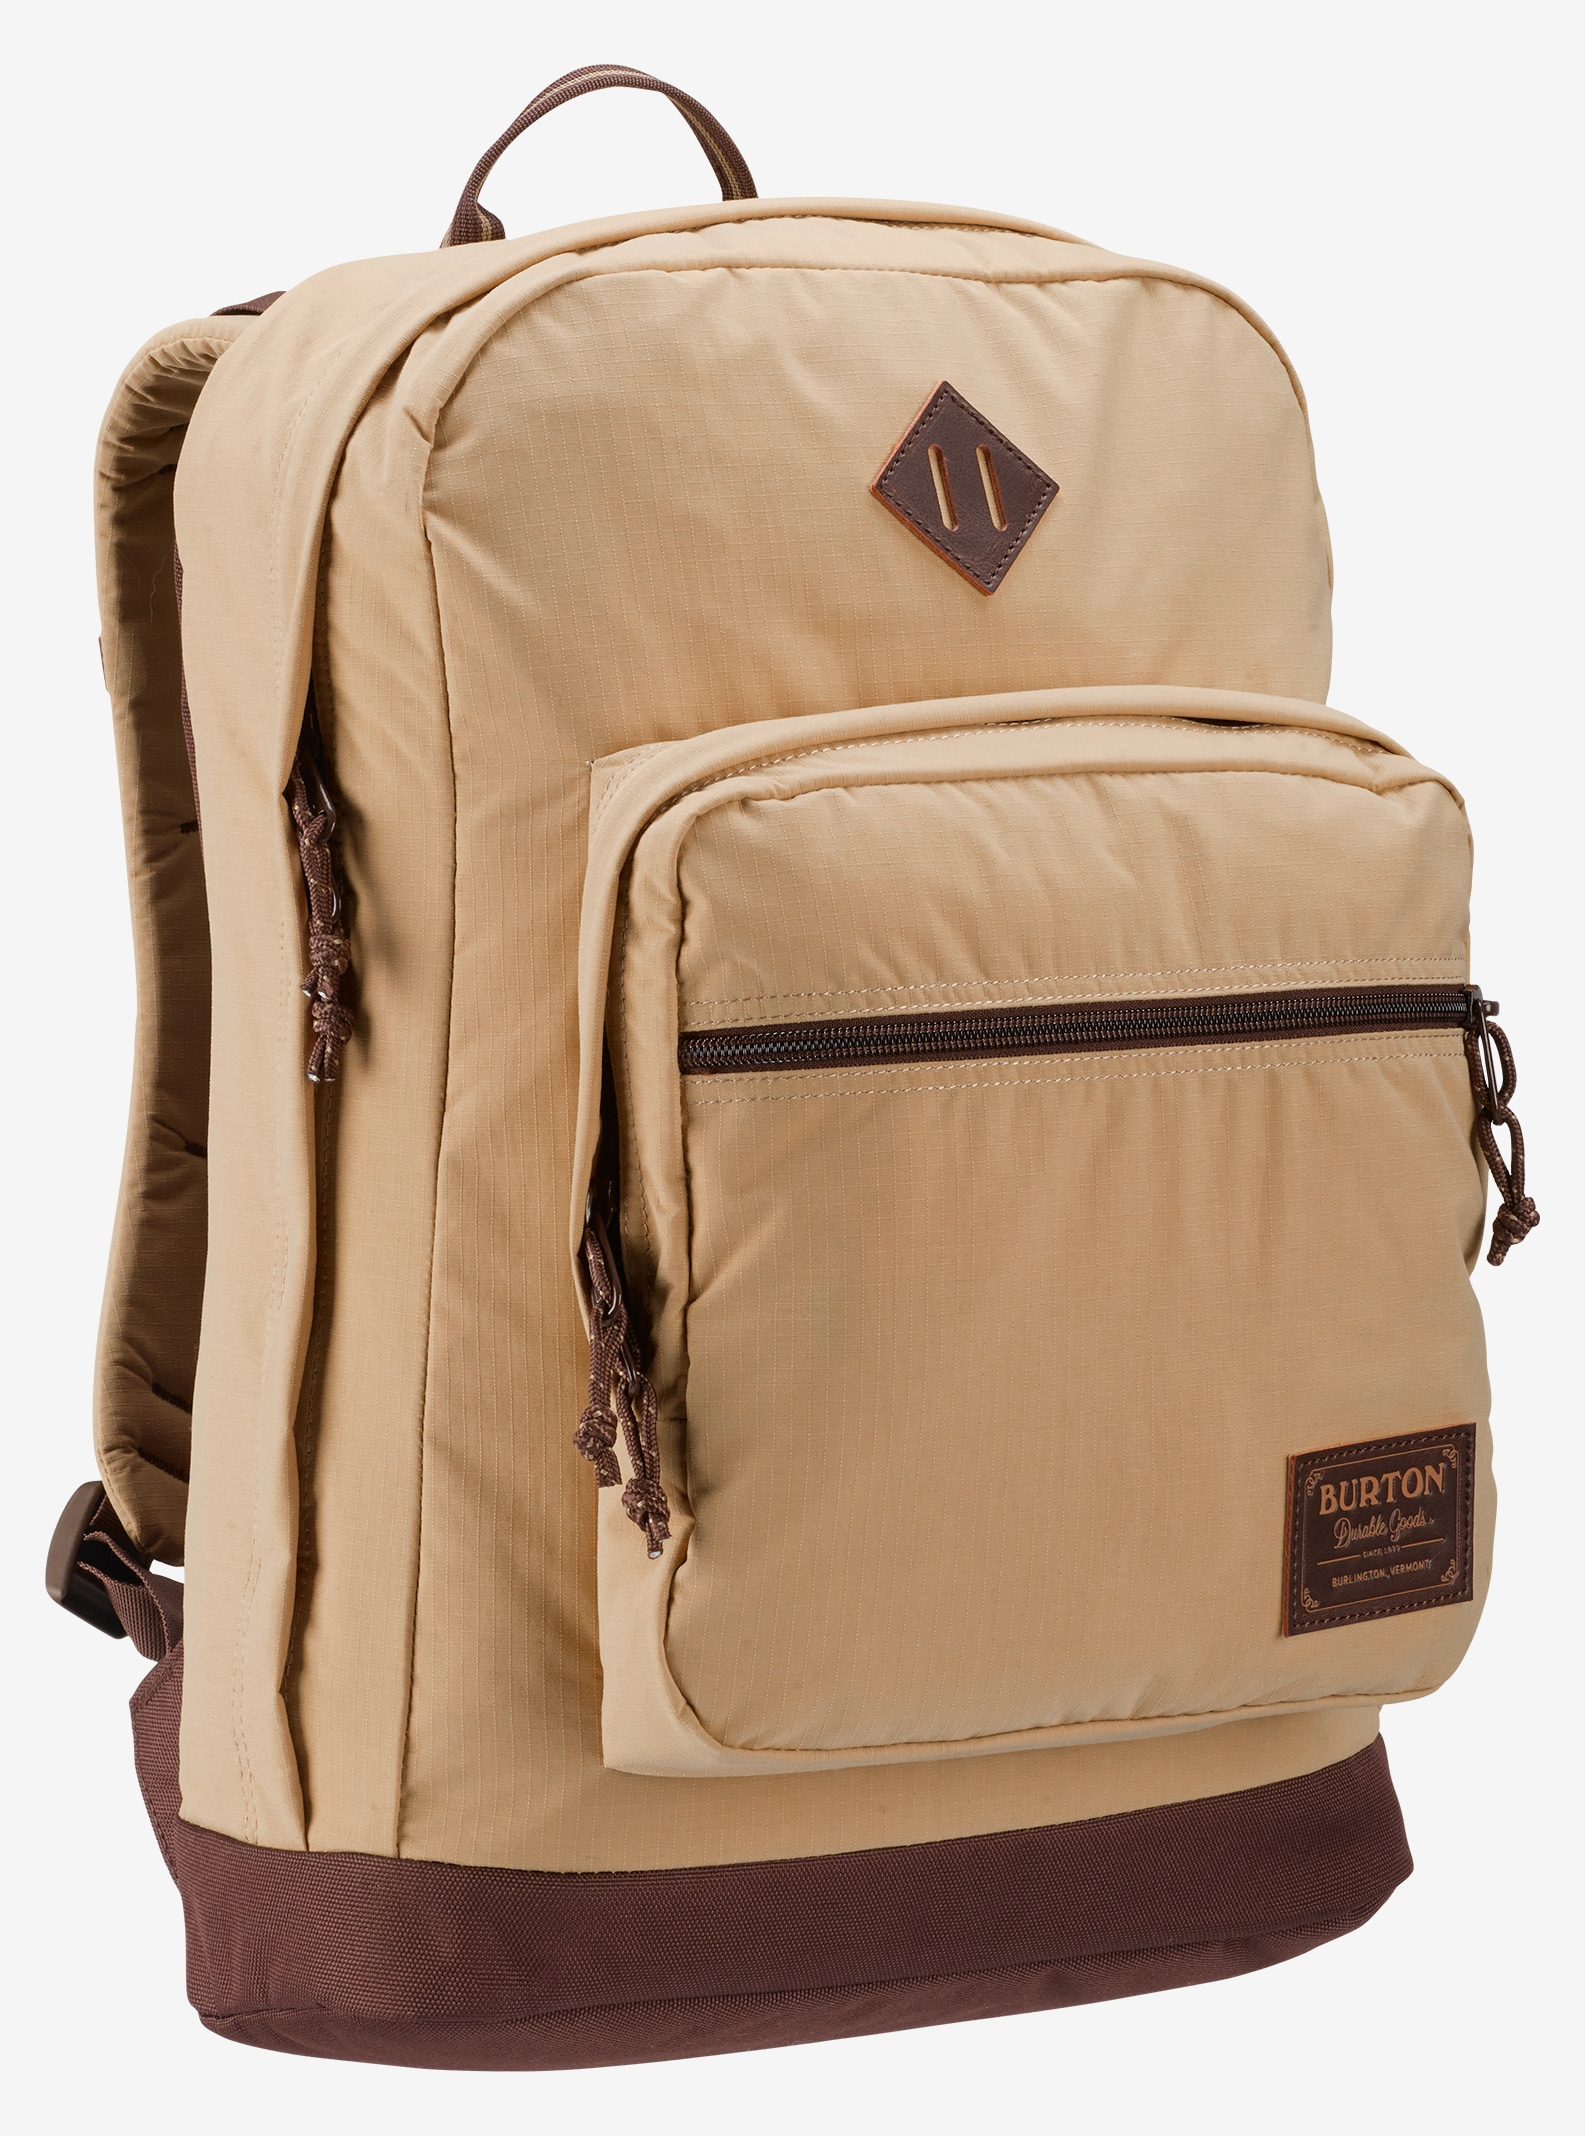 Burton Big Kettle Backpack shown in Putty Ripstop